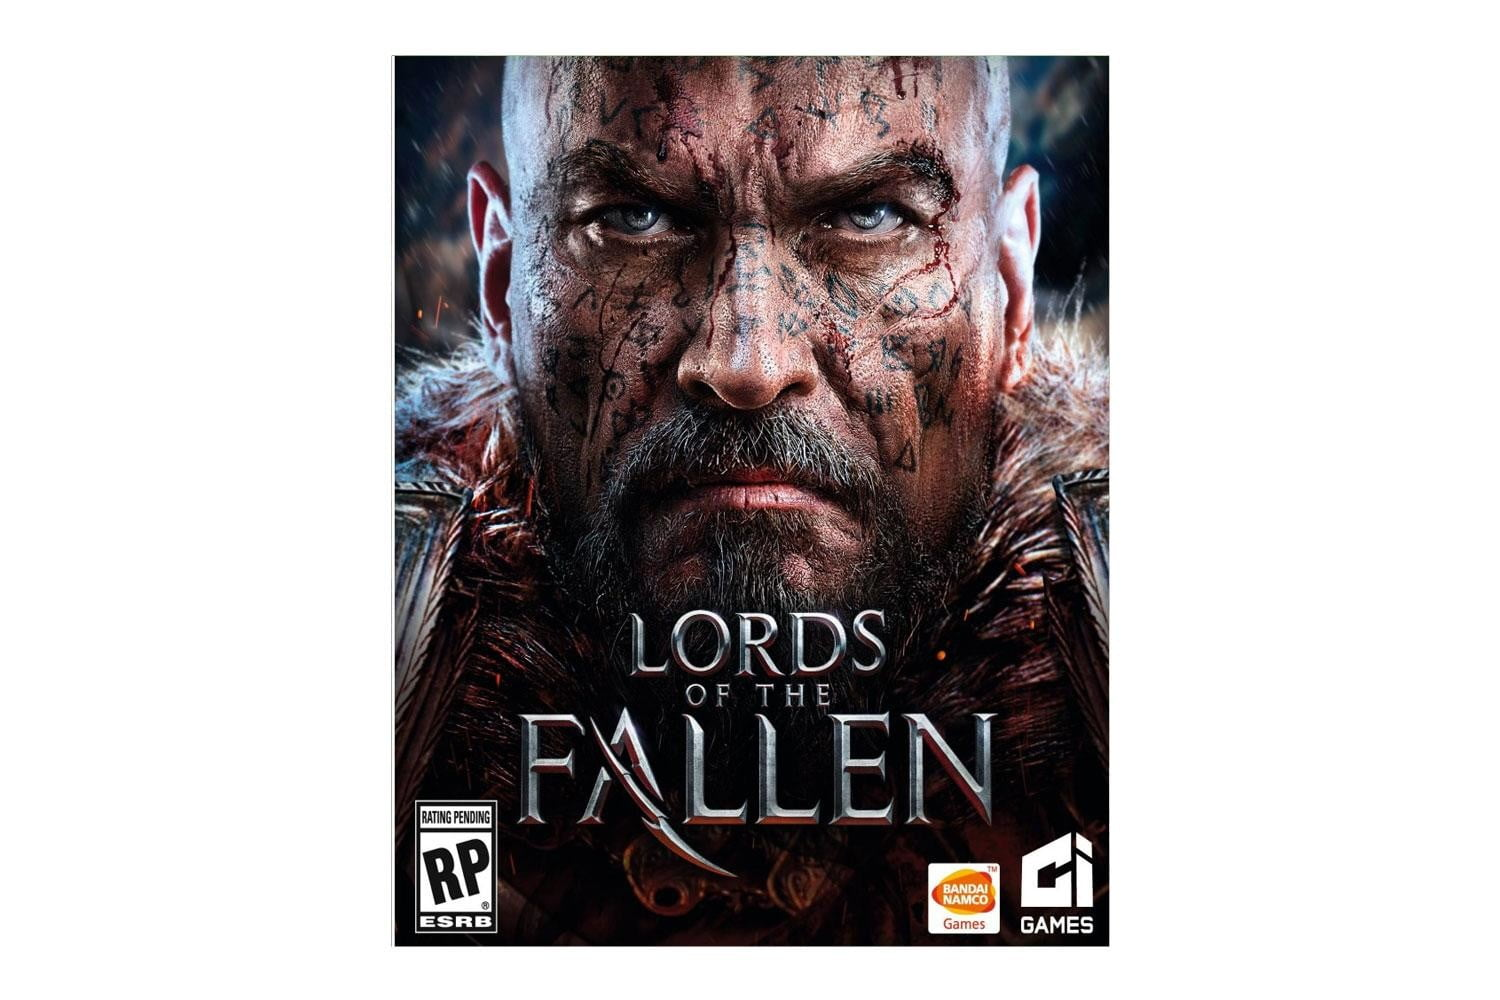 Lords-of-the-Fallen-cover-art